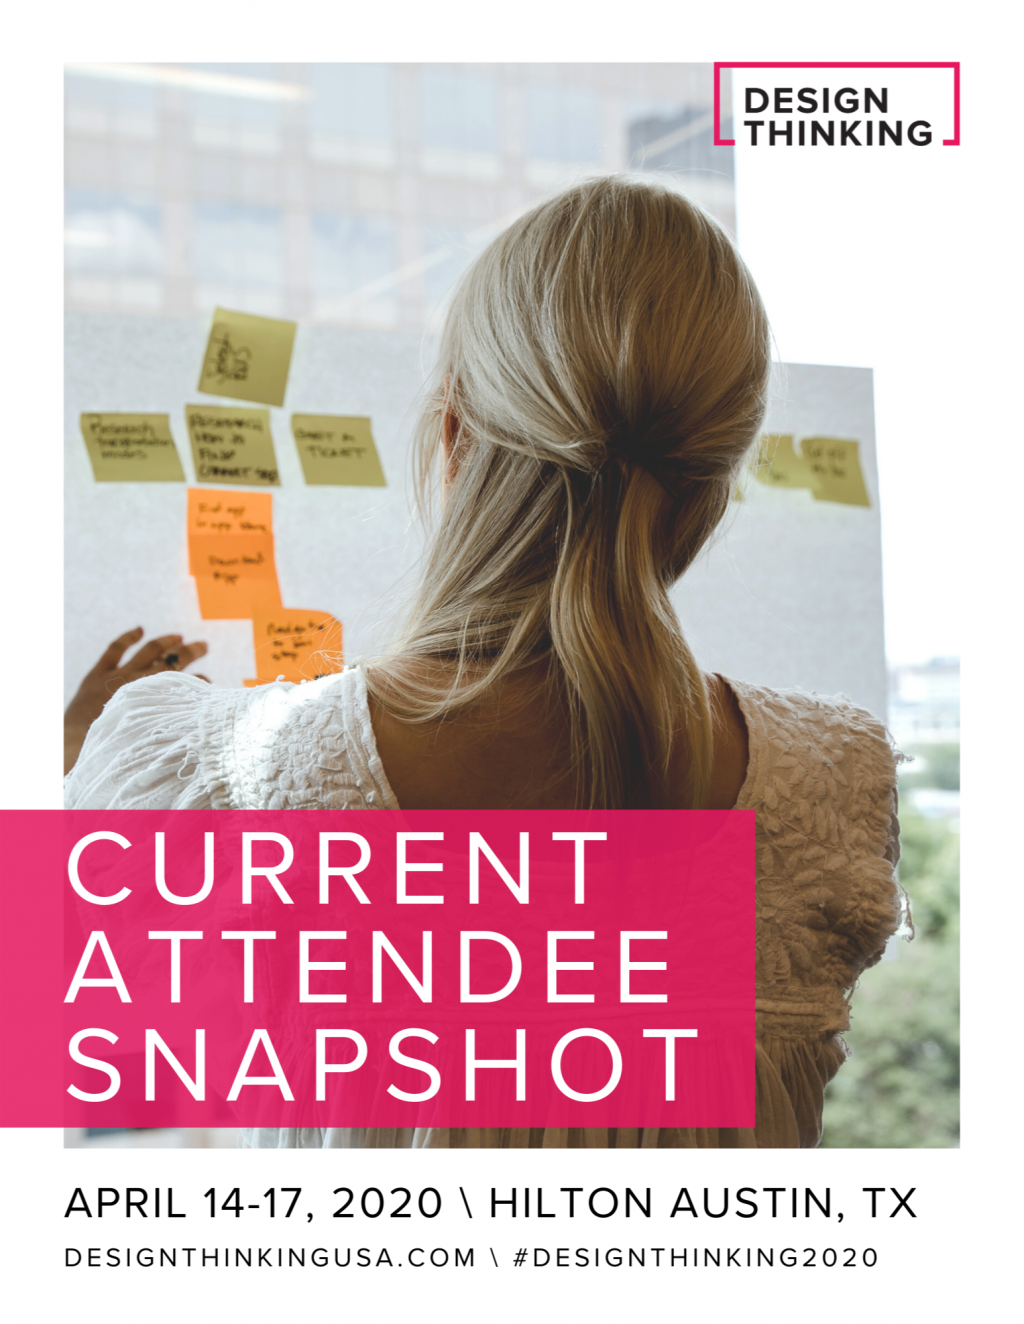 Design Thinking 2020 Current Attendee Snapshot